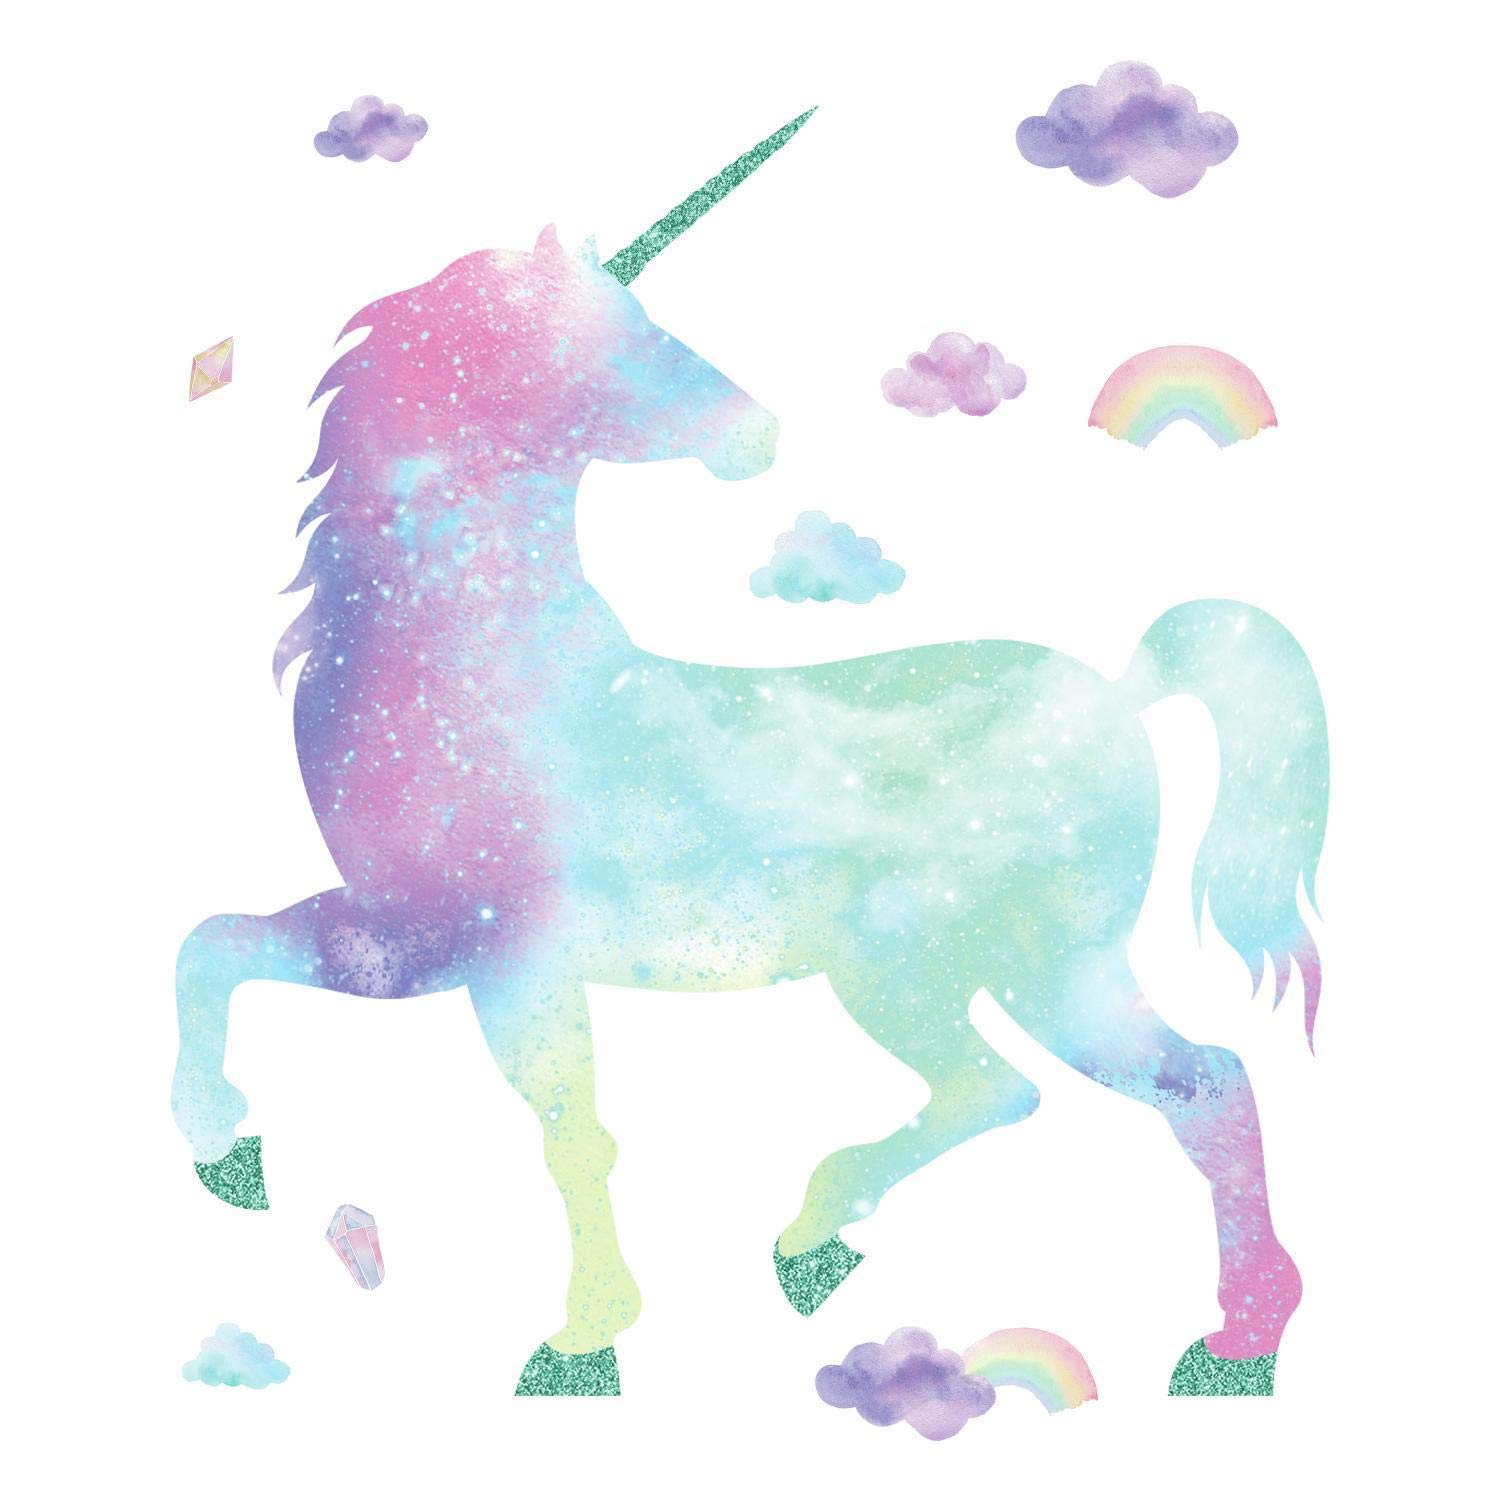 RoomMates Galaxy Unicorn Peel And Stick Giant Wall Decal With Glitter by RoomMates (Image #2)